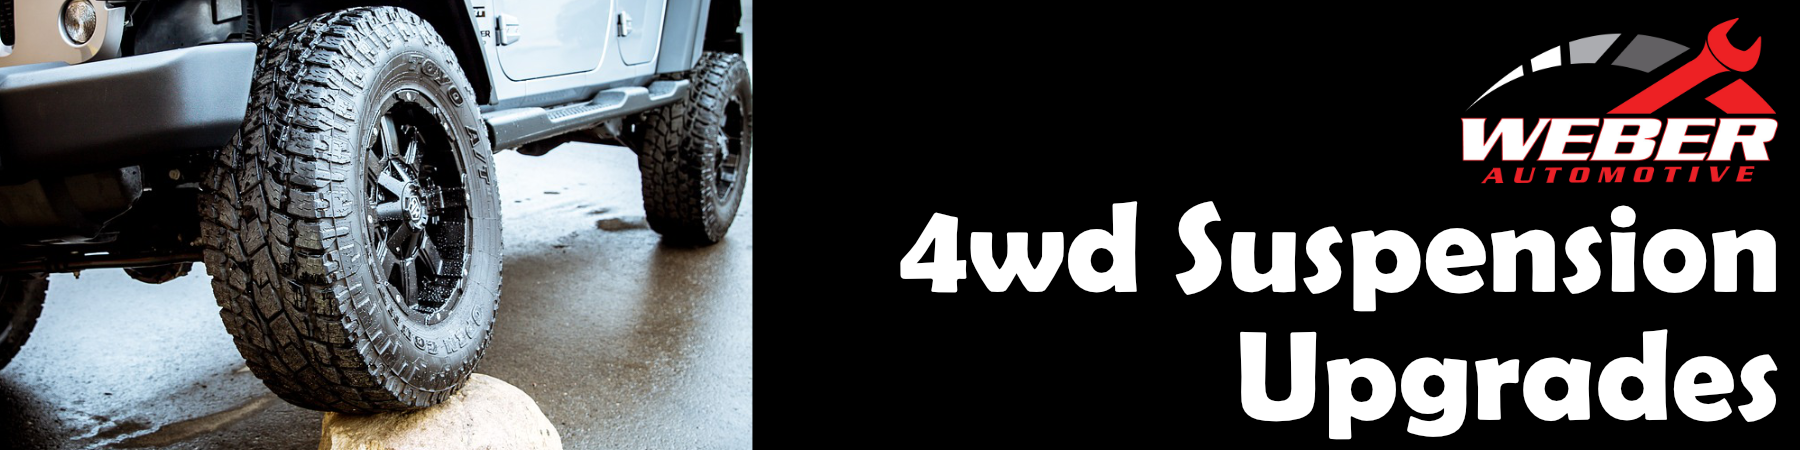 4wd